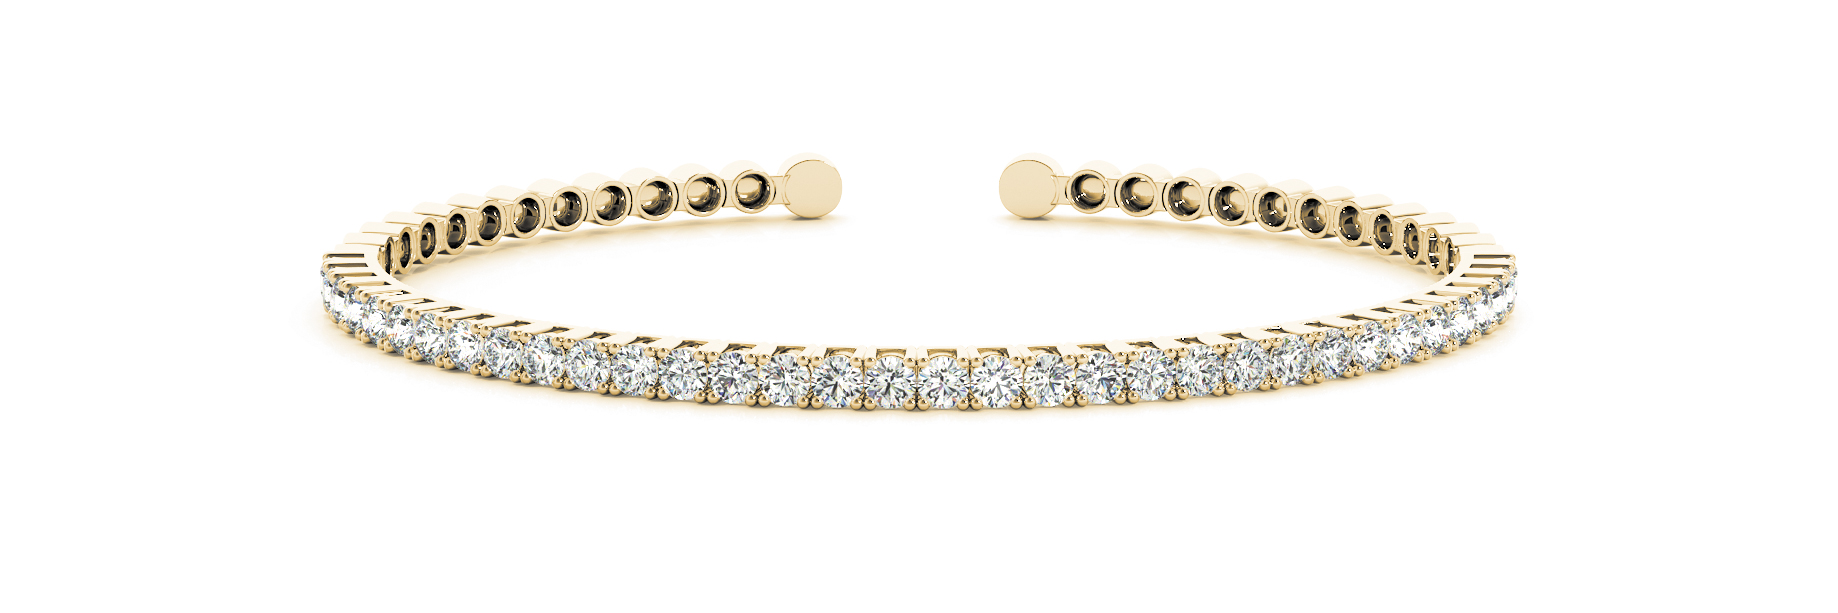 1.98 Carat Round Diamond Open Bangle in Yellow Gold